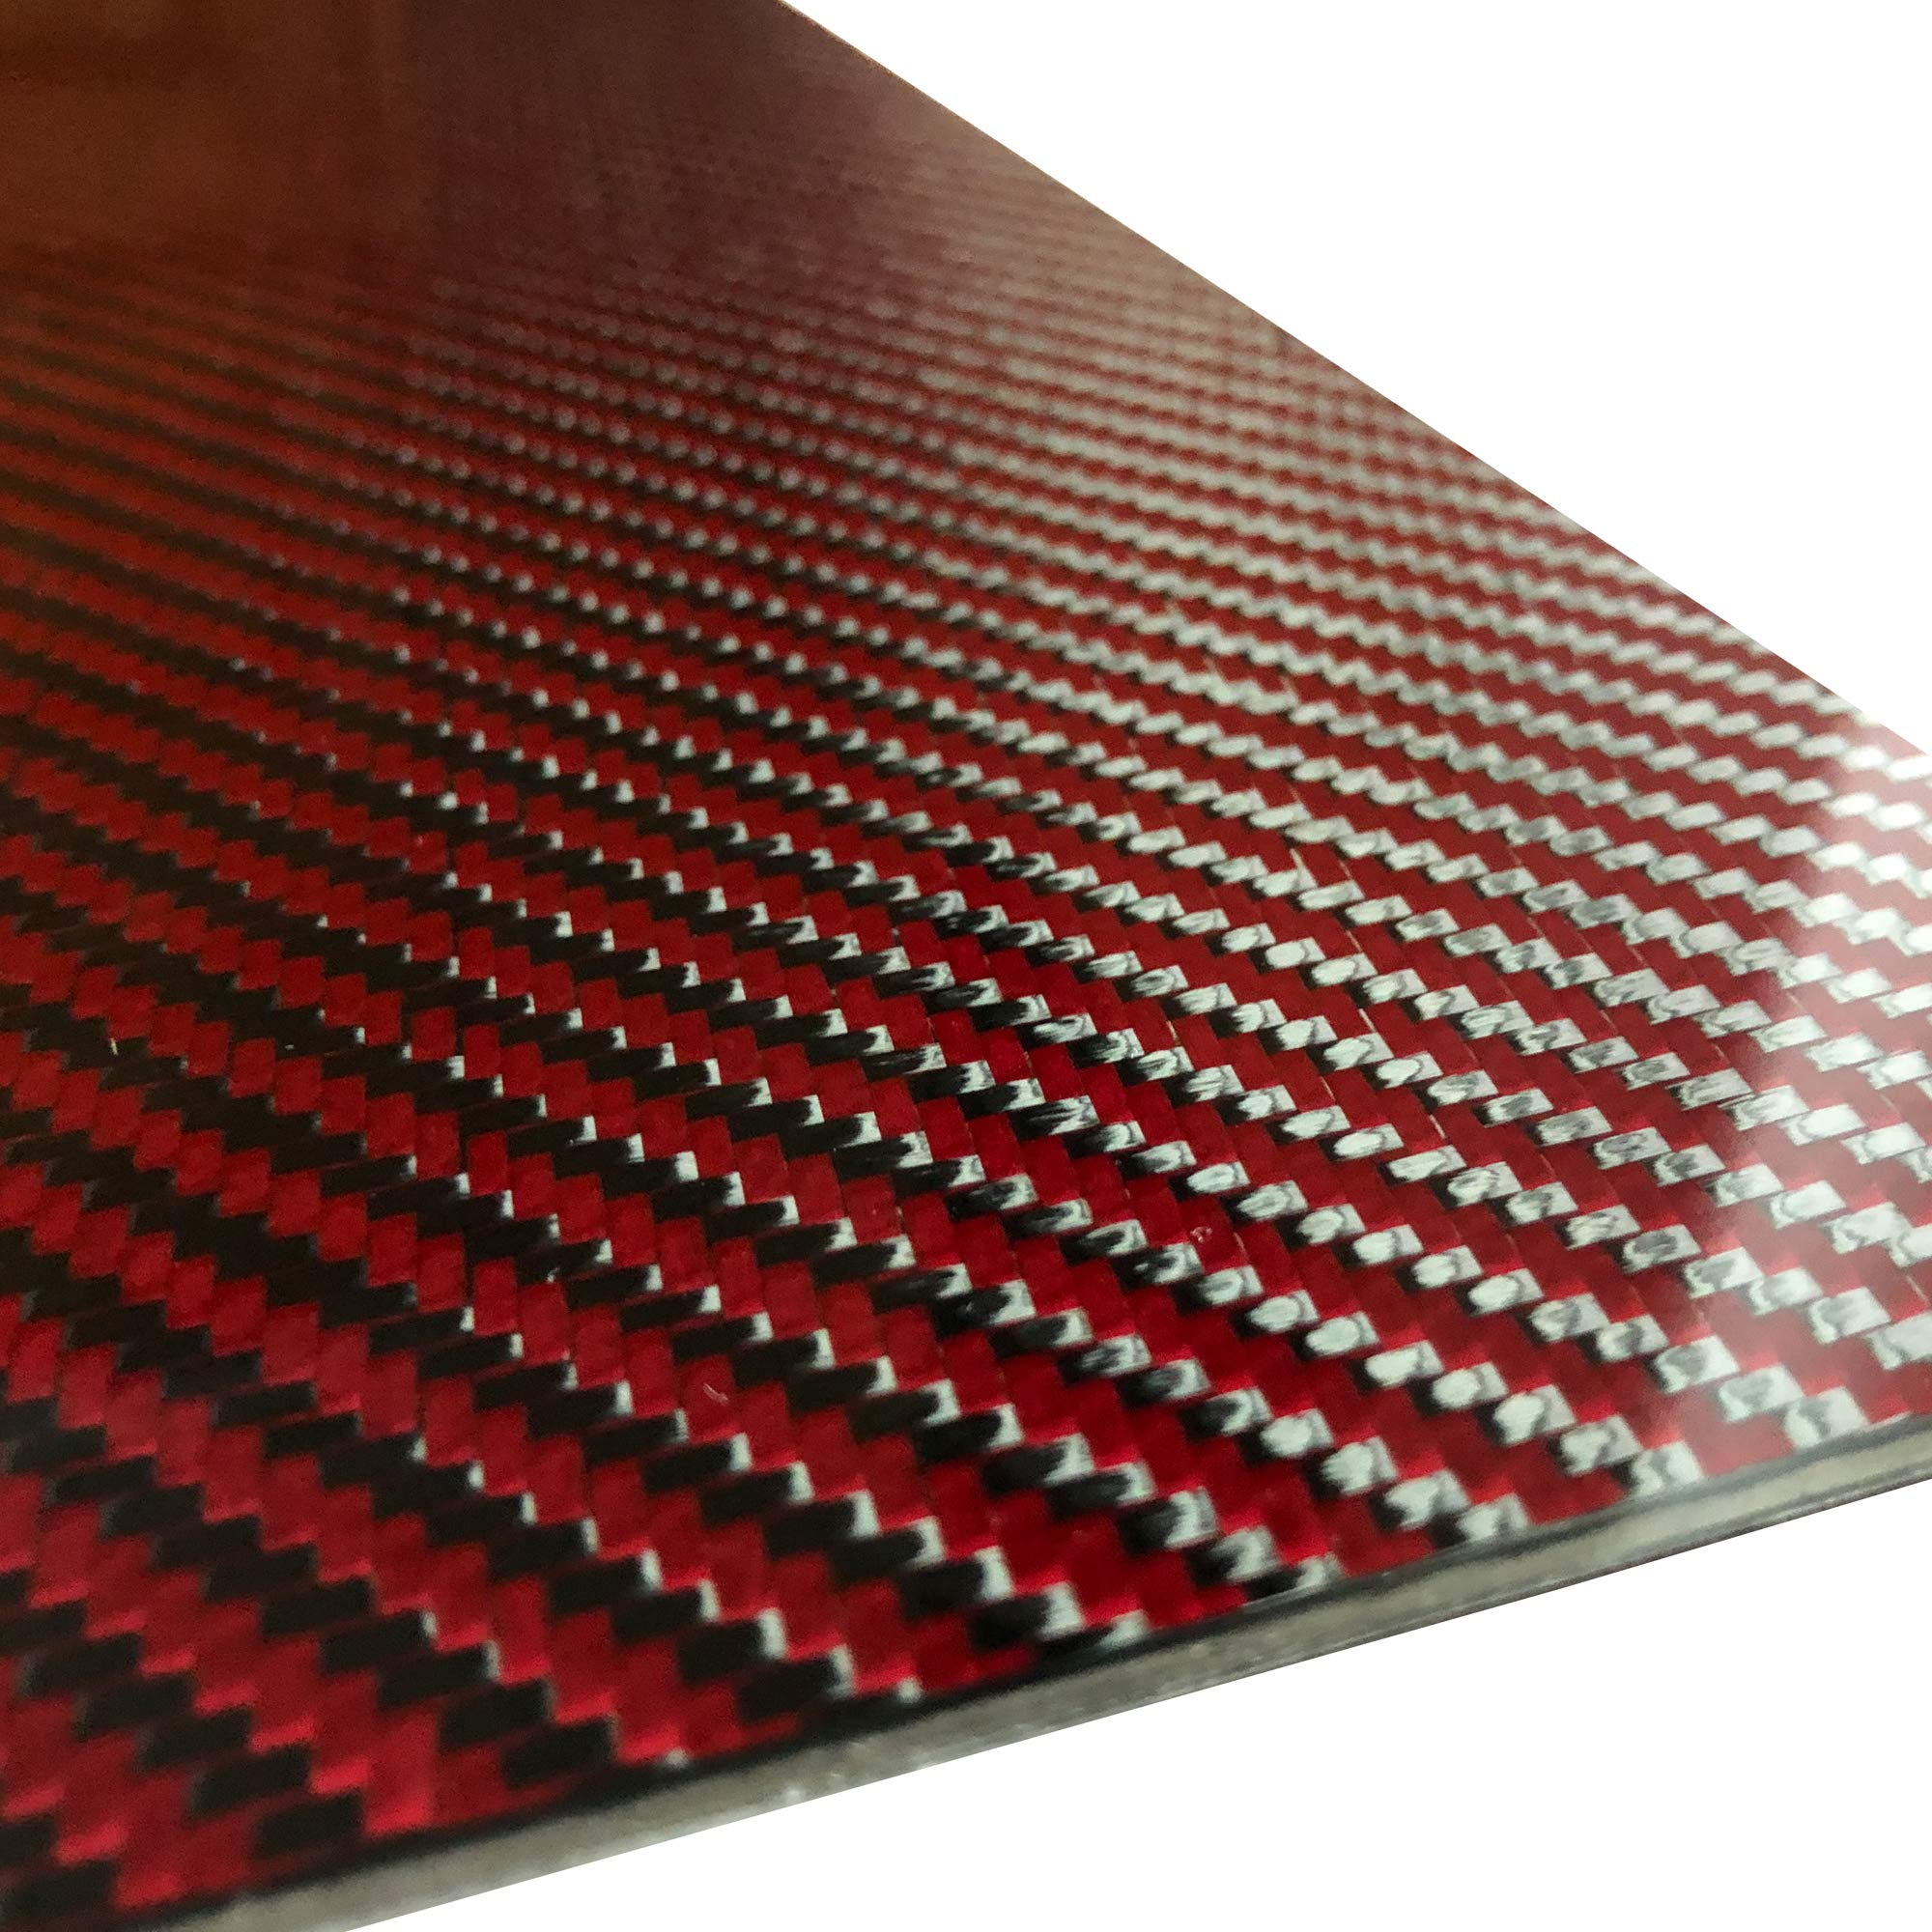 (2) Red Carbon Fiber Plate - 200mm x 300mm x 2mm Thick - 100% -3K Tow, Plain Weave -High Gloss Surface by Carbon Kevlar Supply